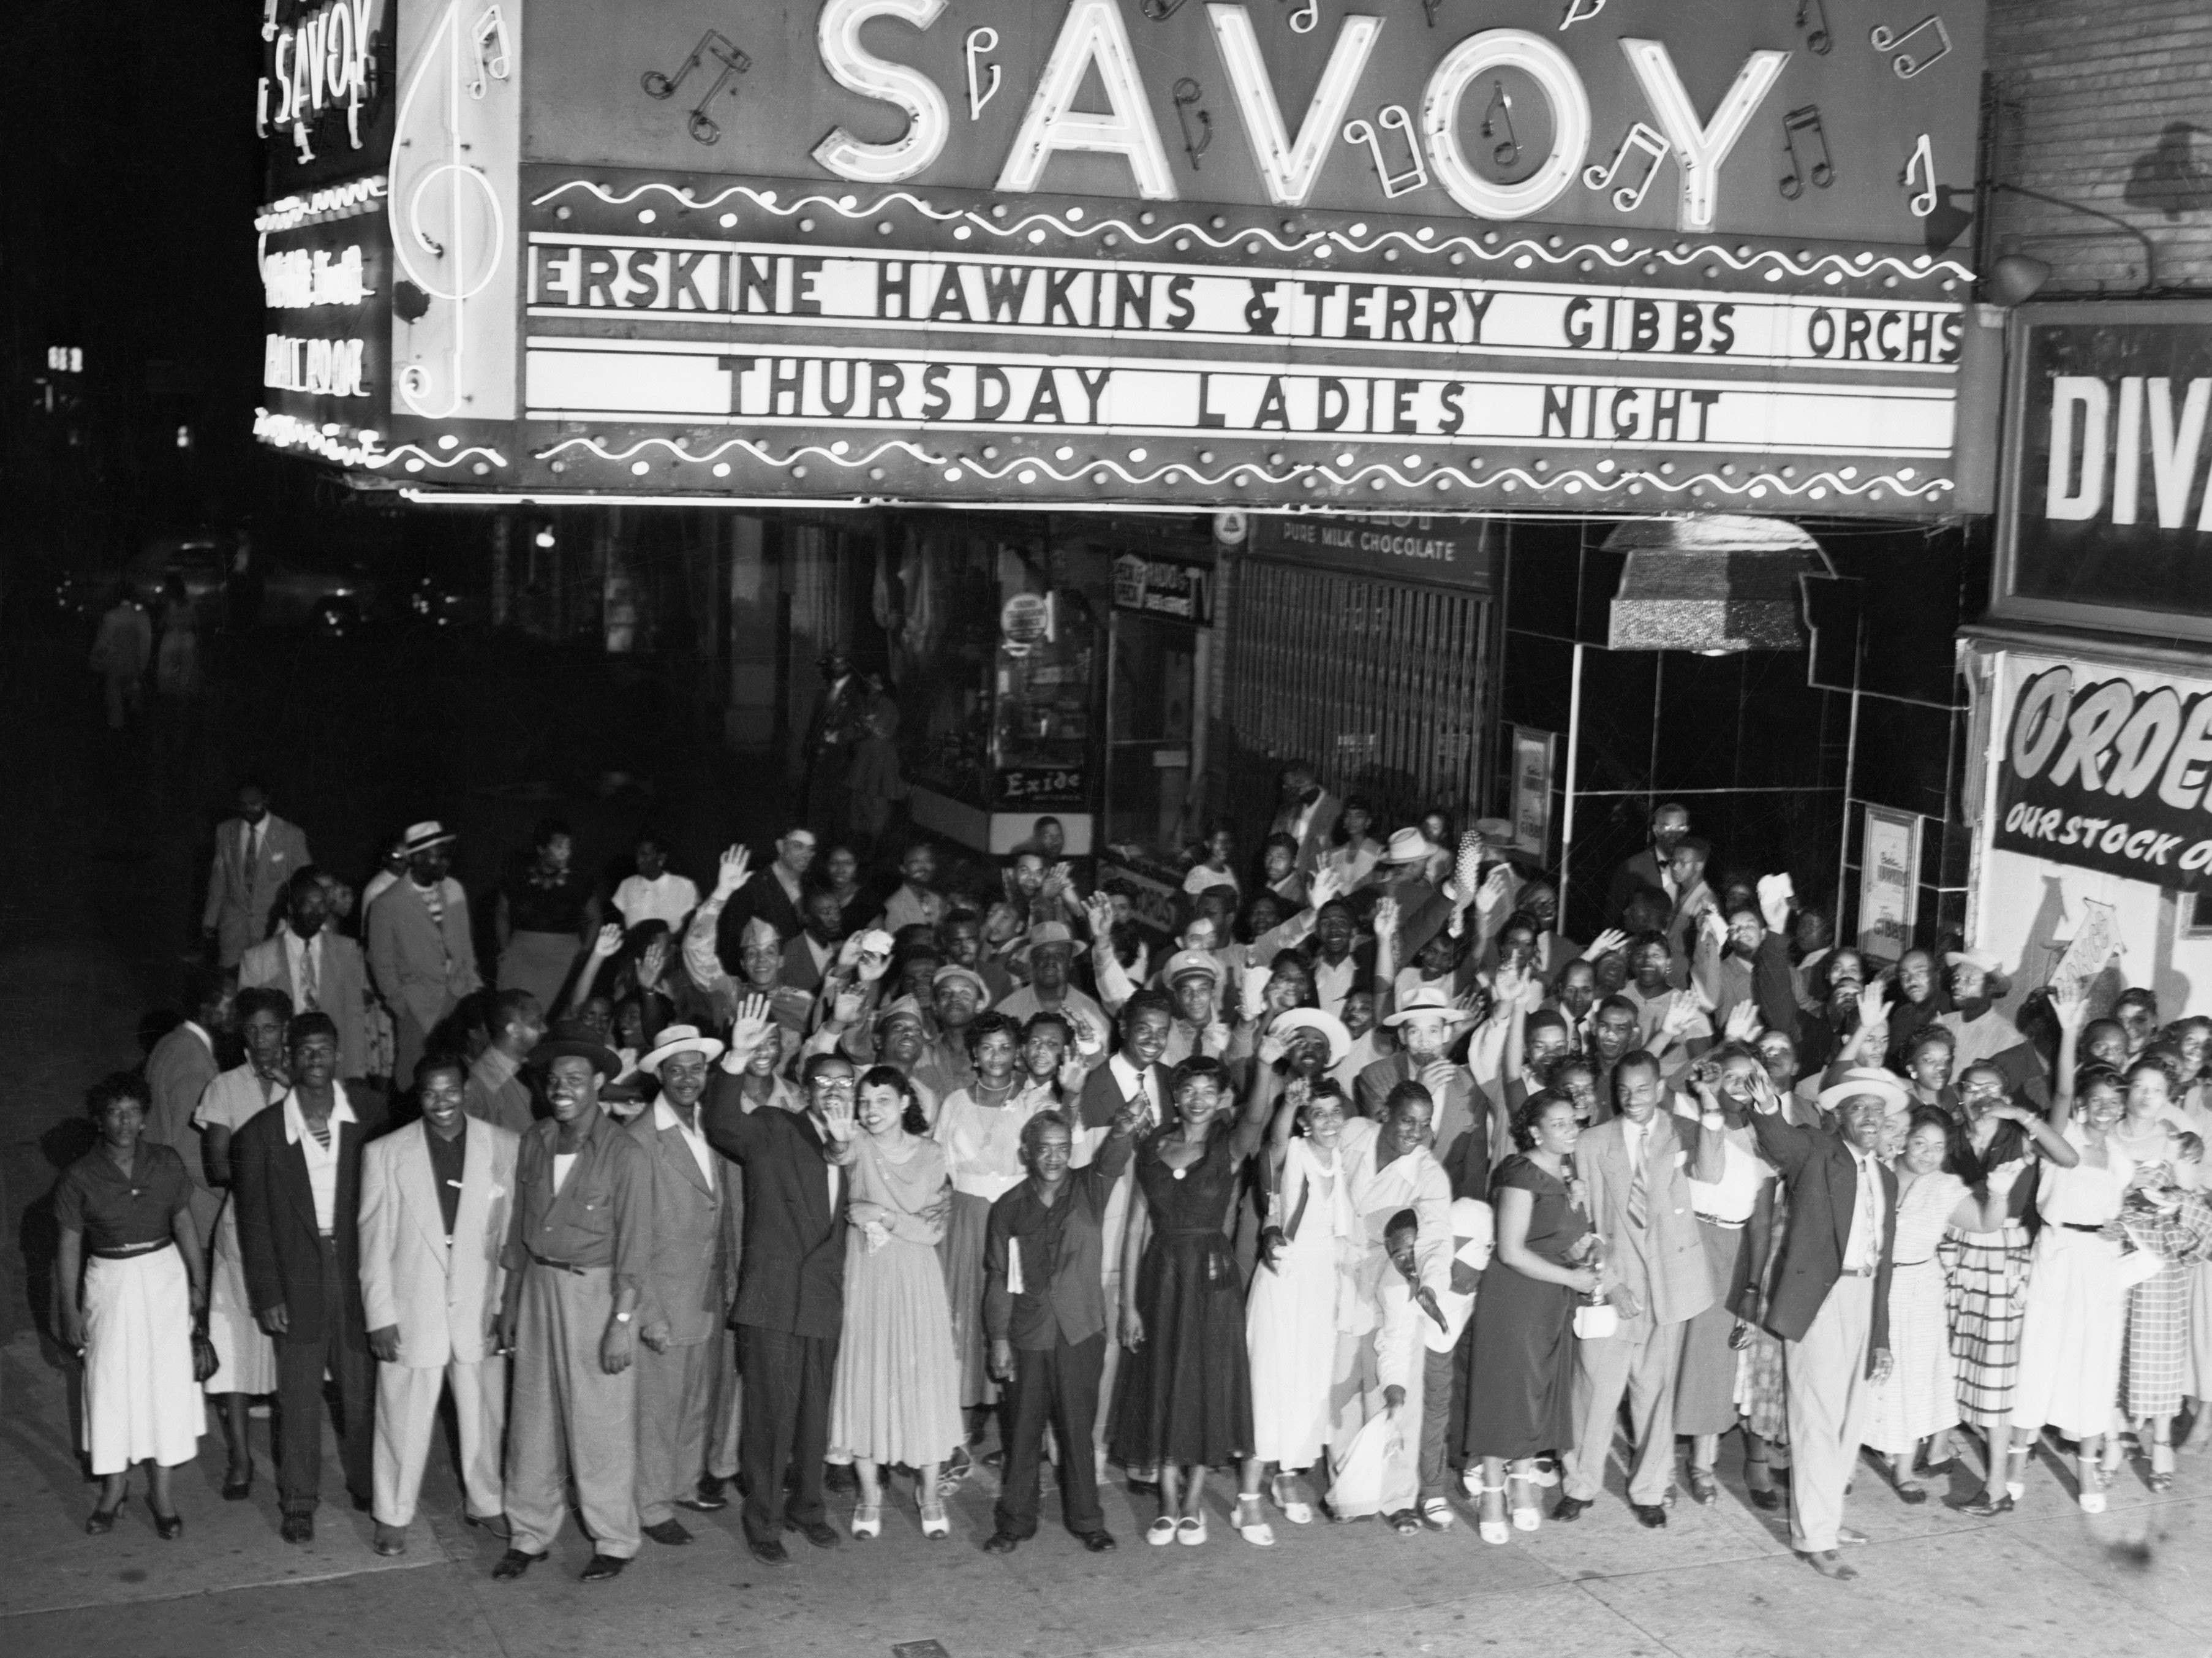 1952 – Crowd outside the Savoy in 1952, marquee advertising Erskine  Hawkins & Terry Gibbs orchestras. Source: Bettmann Collection, Getty Images 514880892.